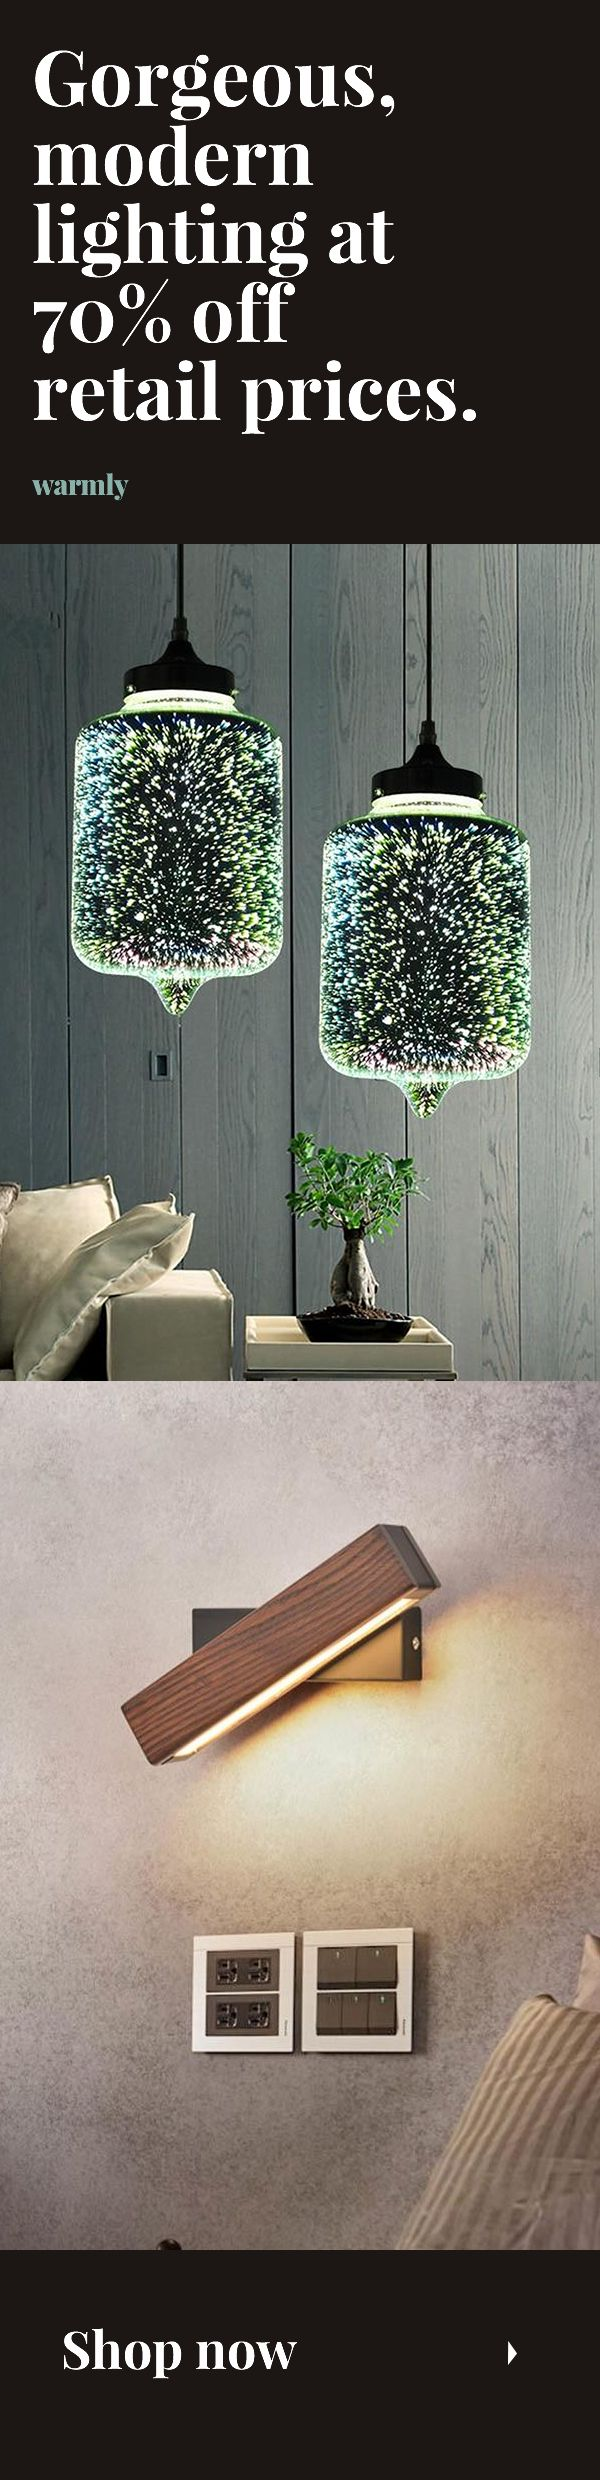 Best-selling modern lights at 70% off retail (or more) – ★★★★★ (5/5) – Thomas Högg